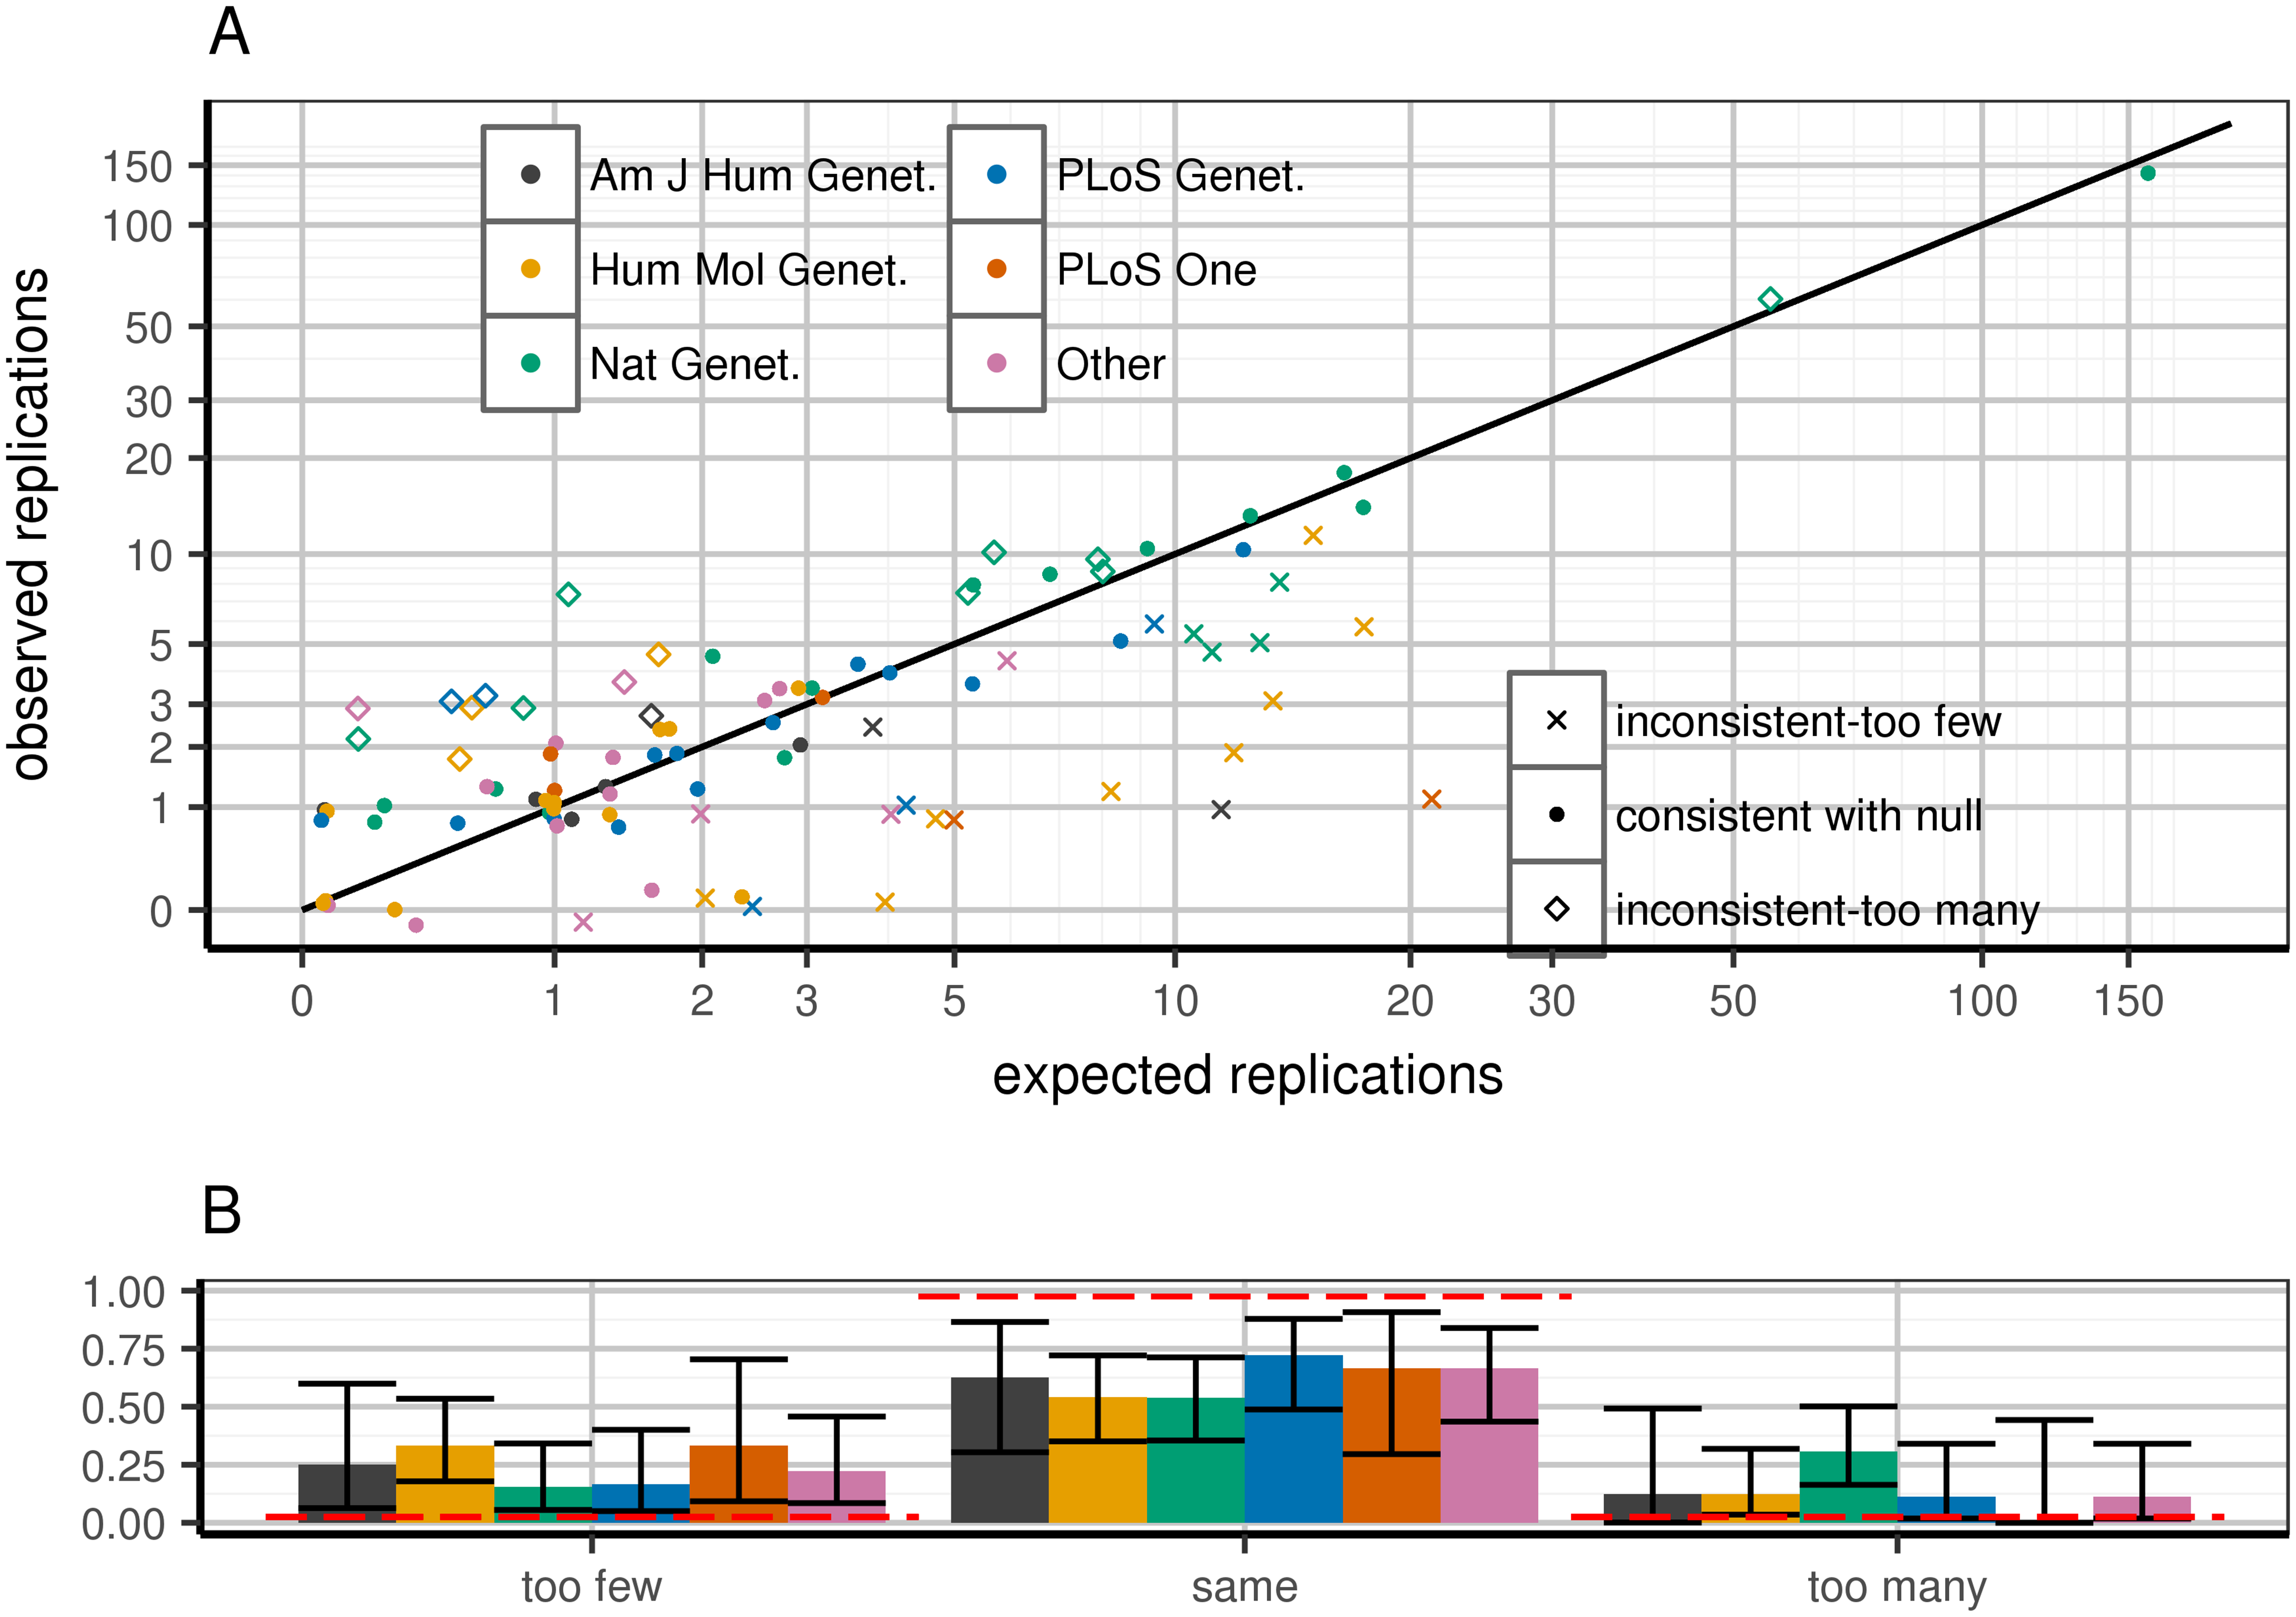 Expected and observed replication rate per publication, stratified by journal.